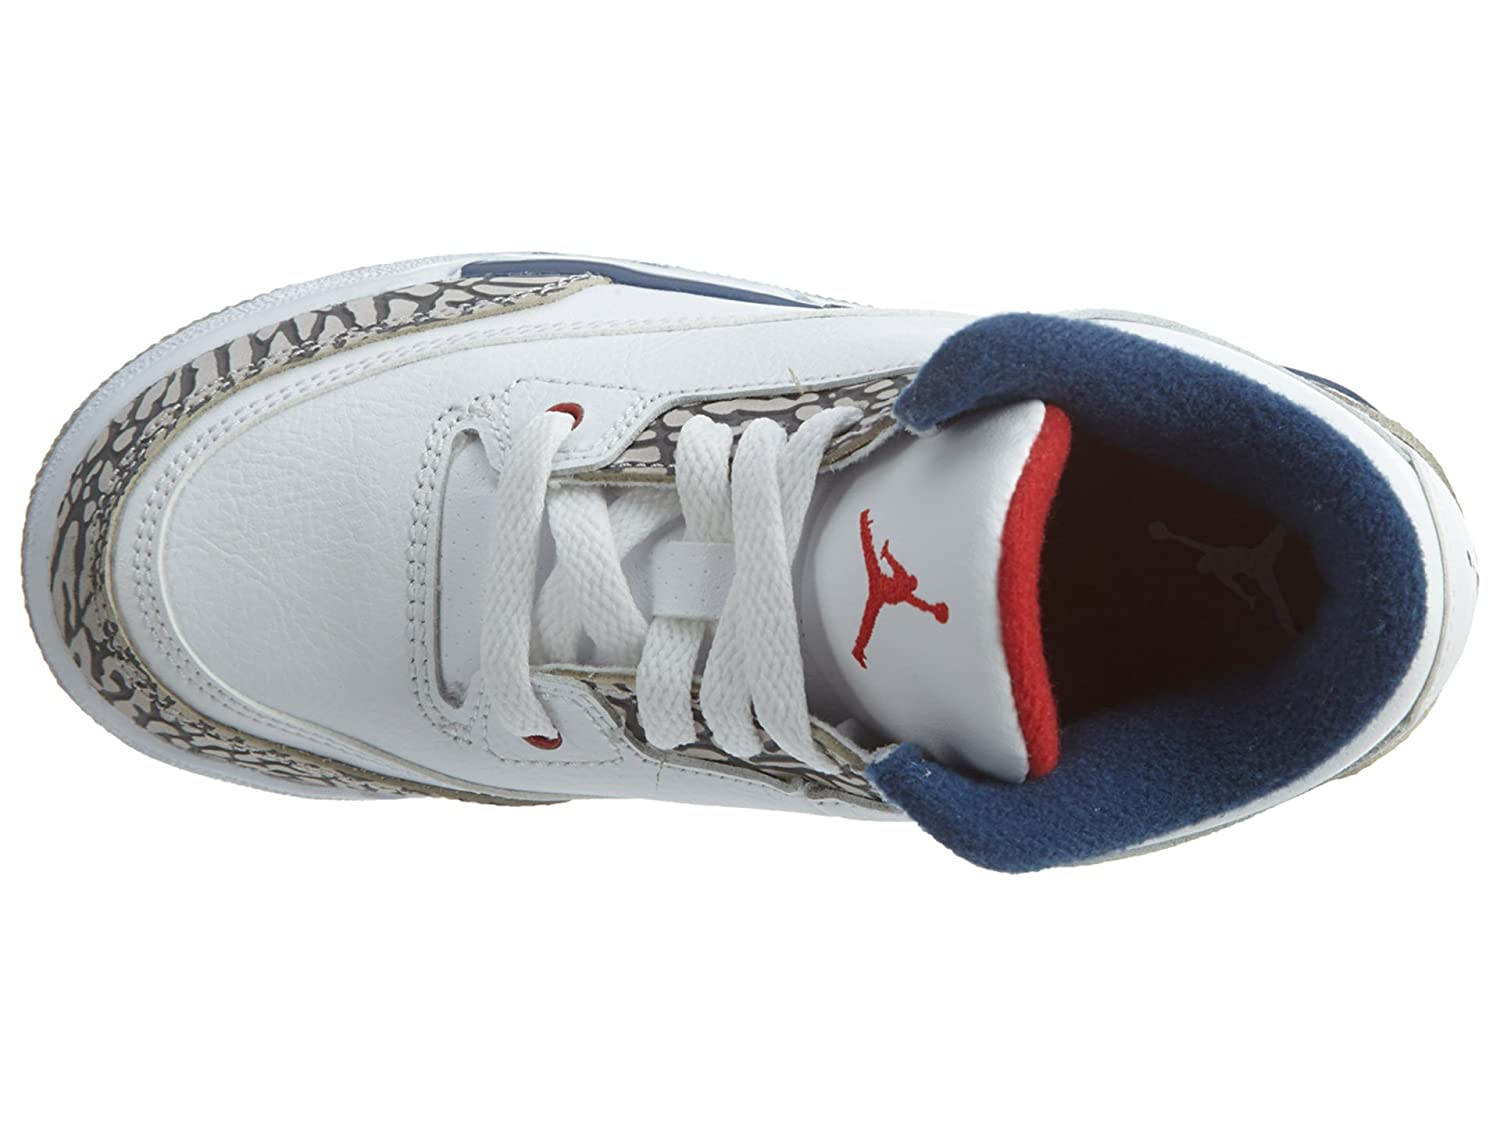 2 M US Little Kid Jordan Retro 3True Og White//Fire Red-True Blue Little Kid